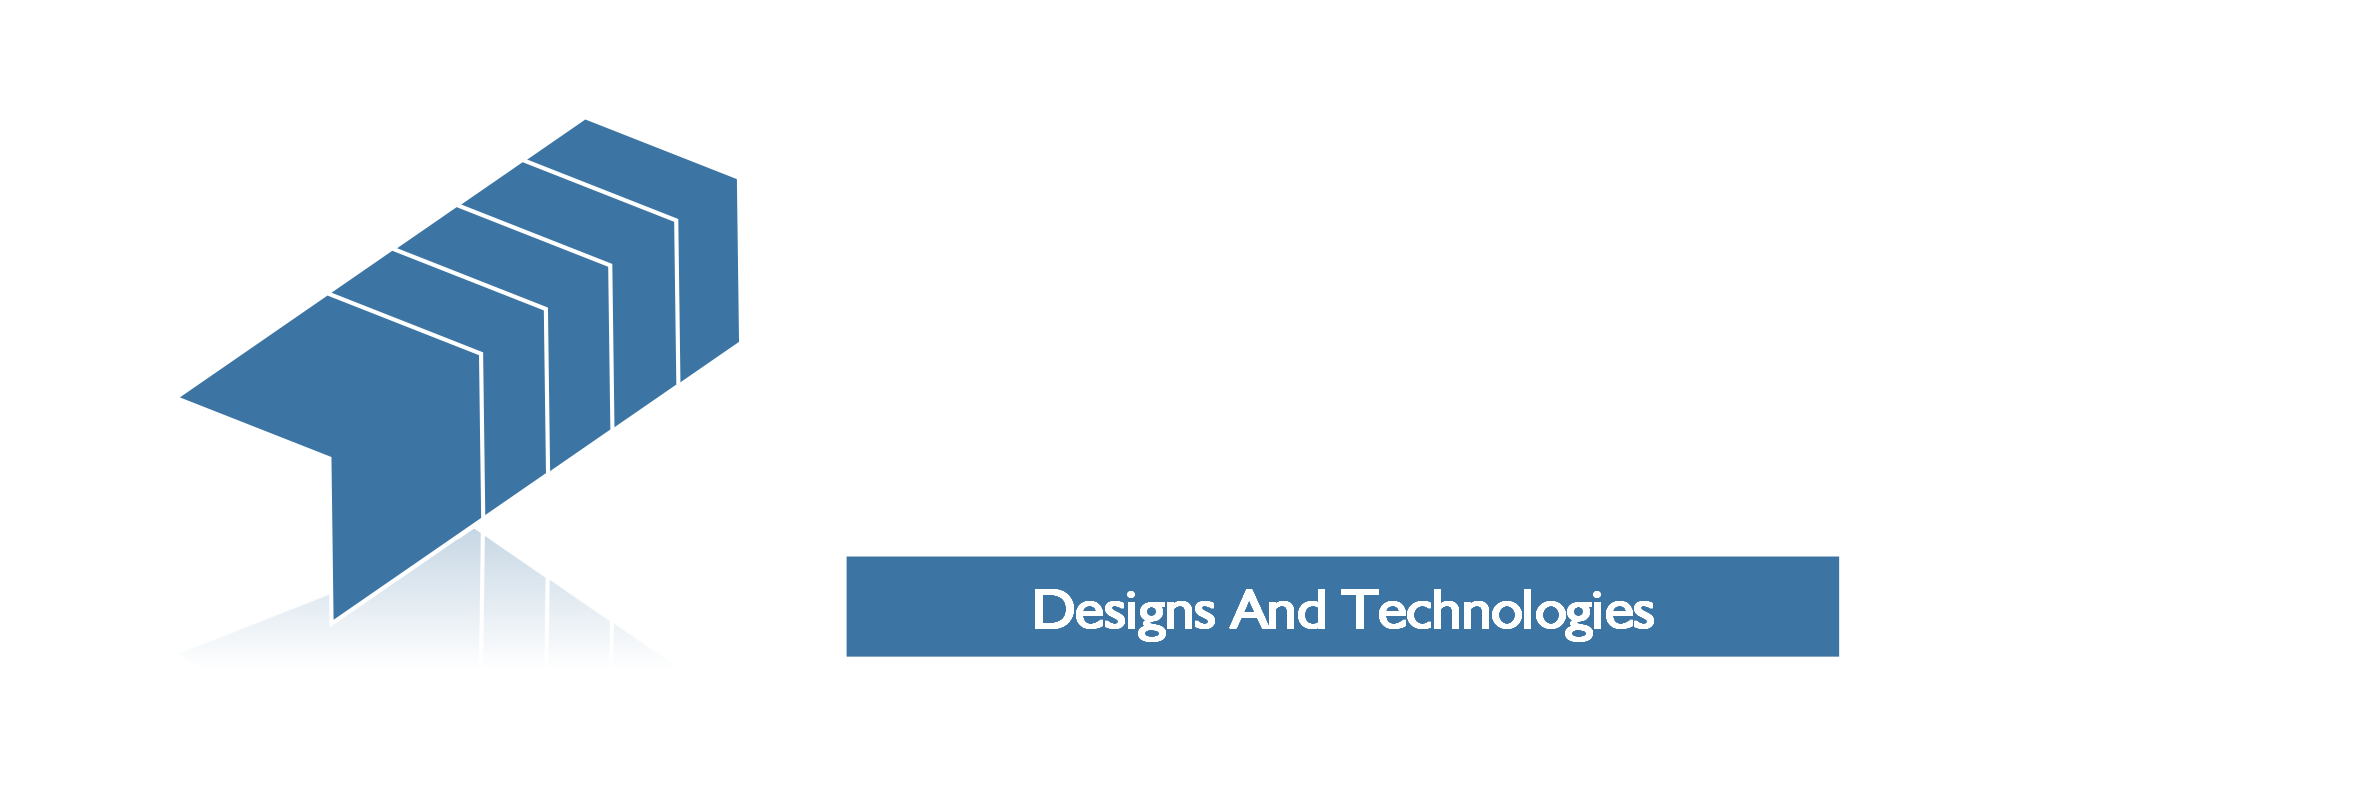 RWeb Designs And Technologies